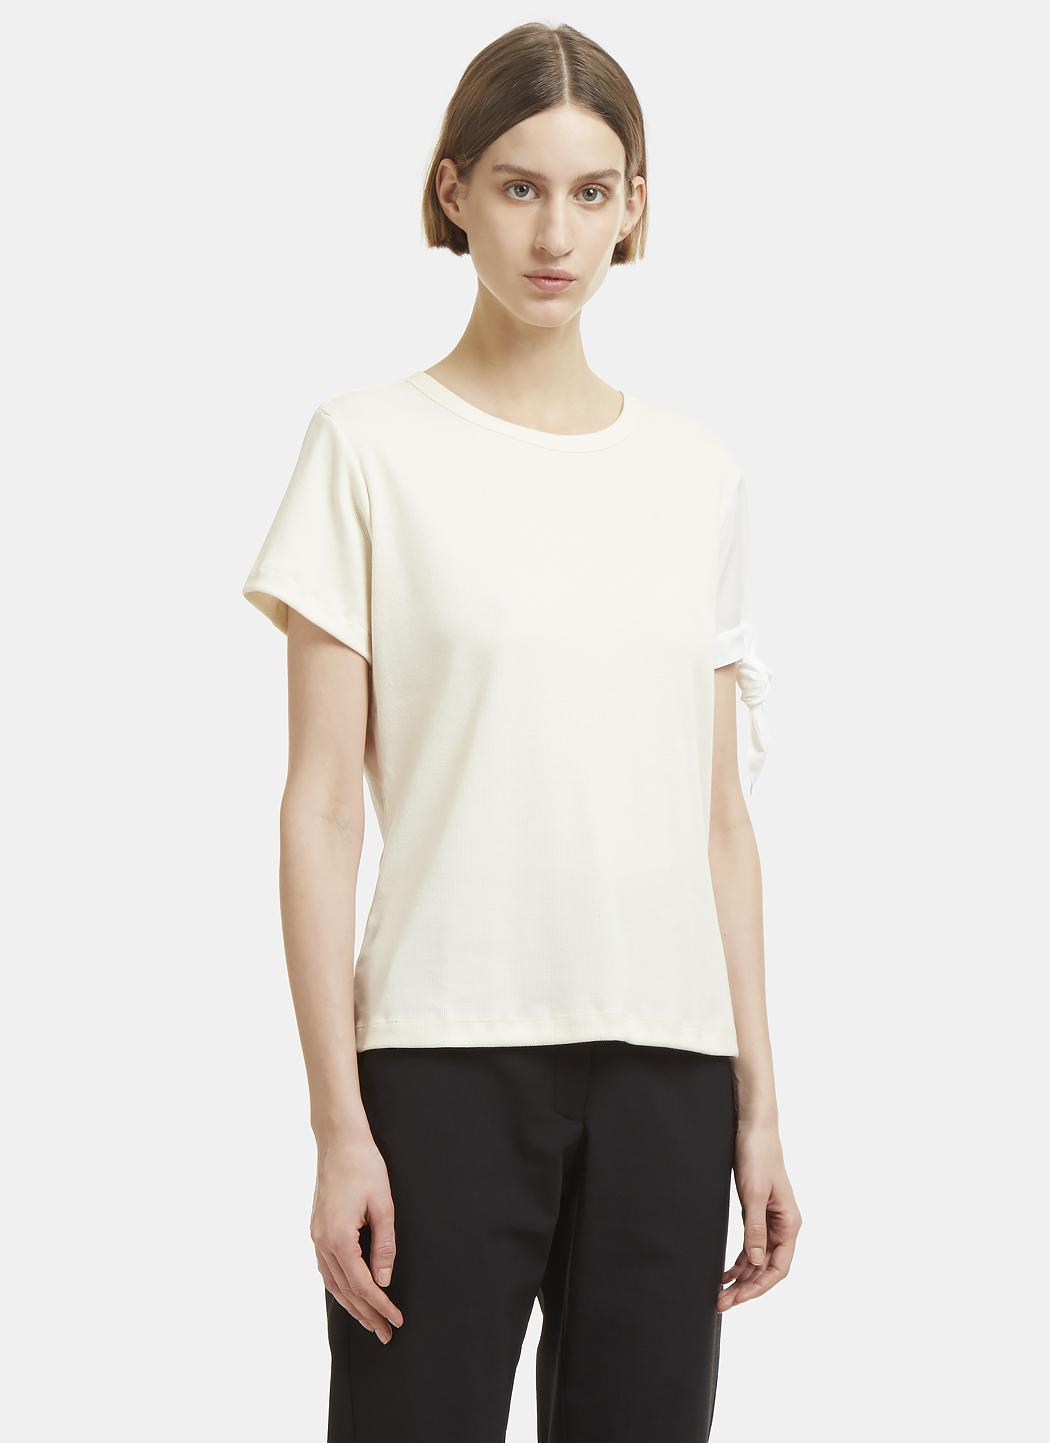 Footlocker Cheap Price JW Anderson ribbed T-shirt Outlet Amazing Price Cheap Sale Footlocker Finishline bCpP8ZYC